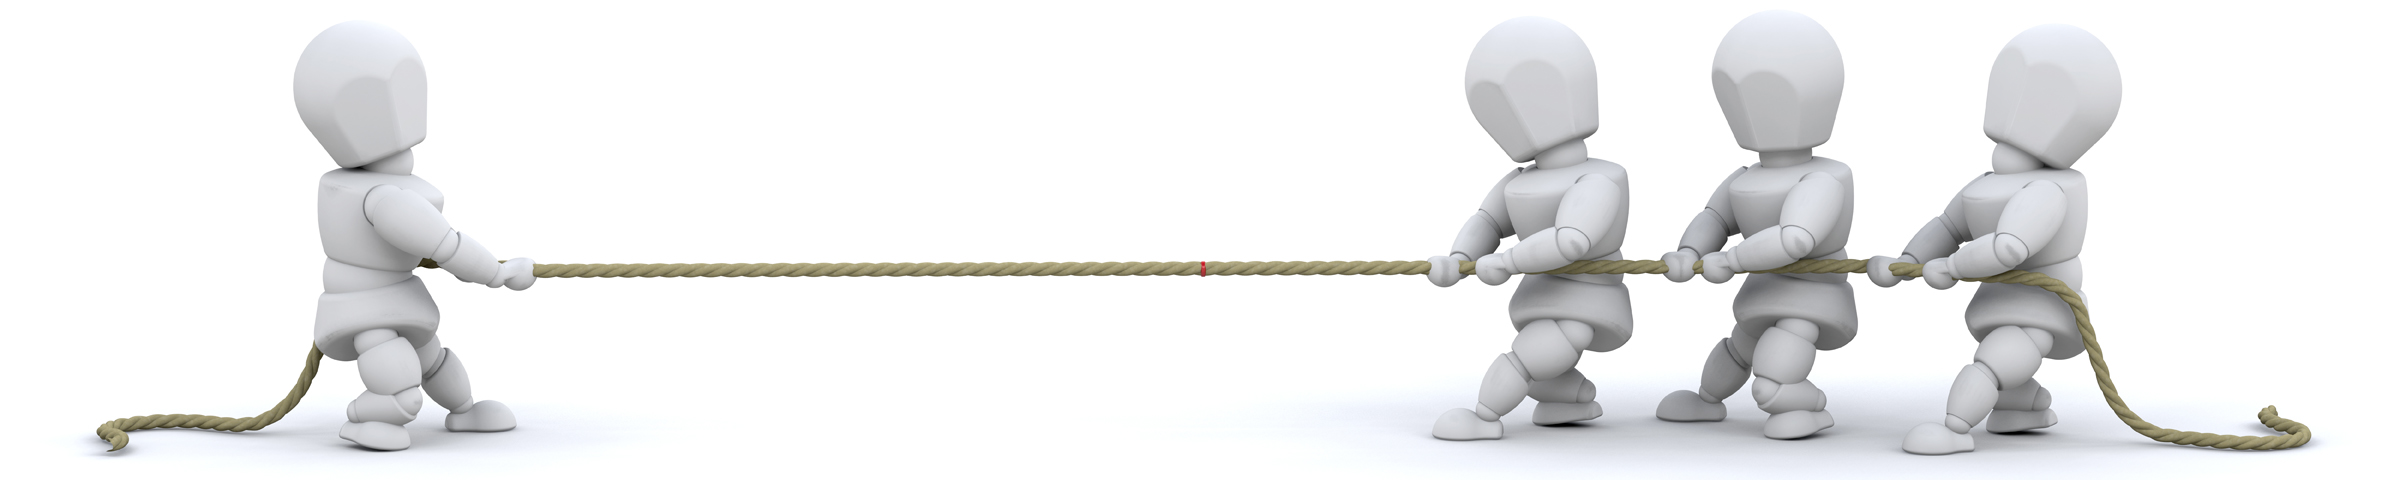 3d Render Of Men Pulling On Rope